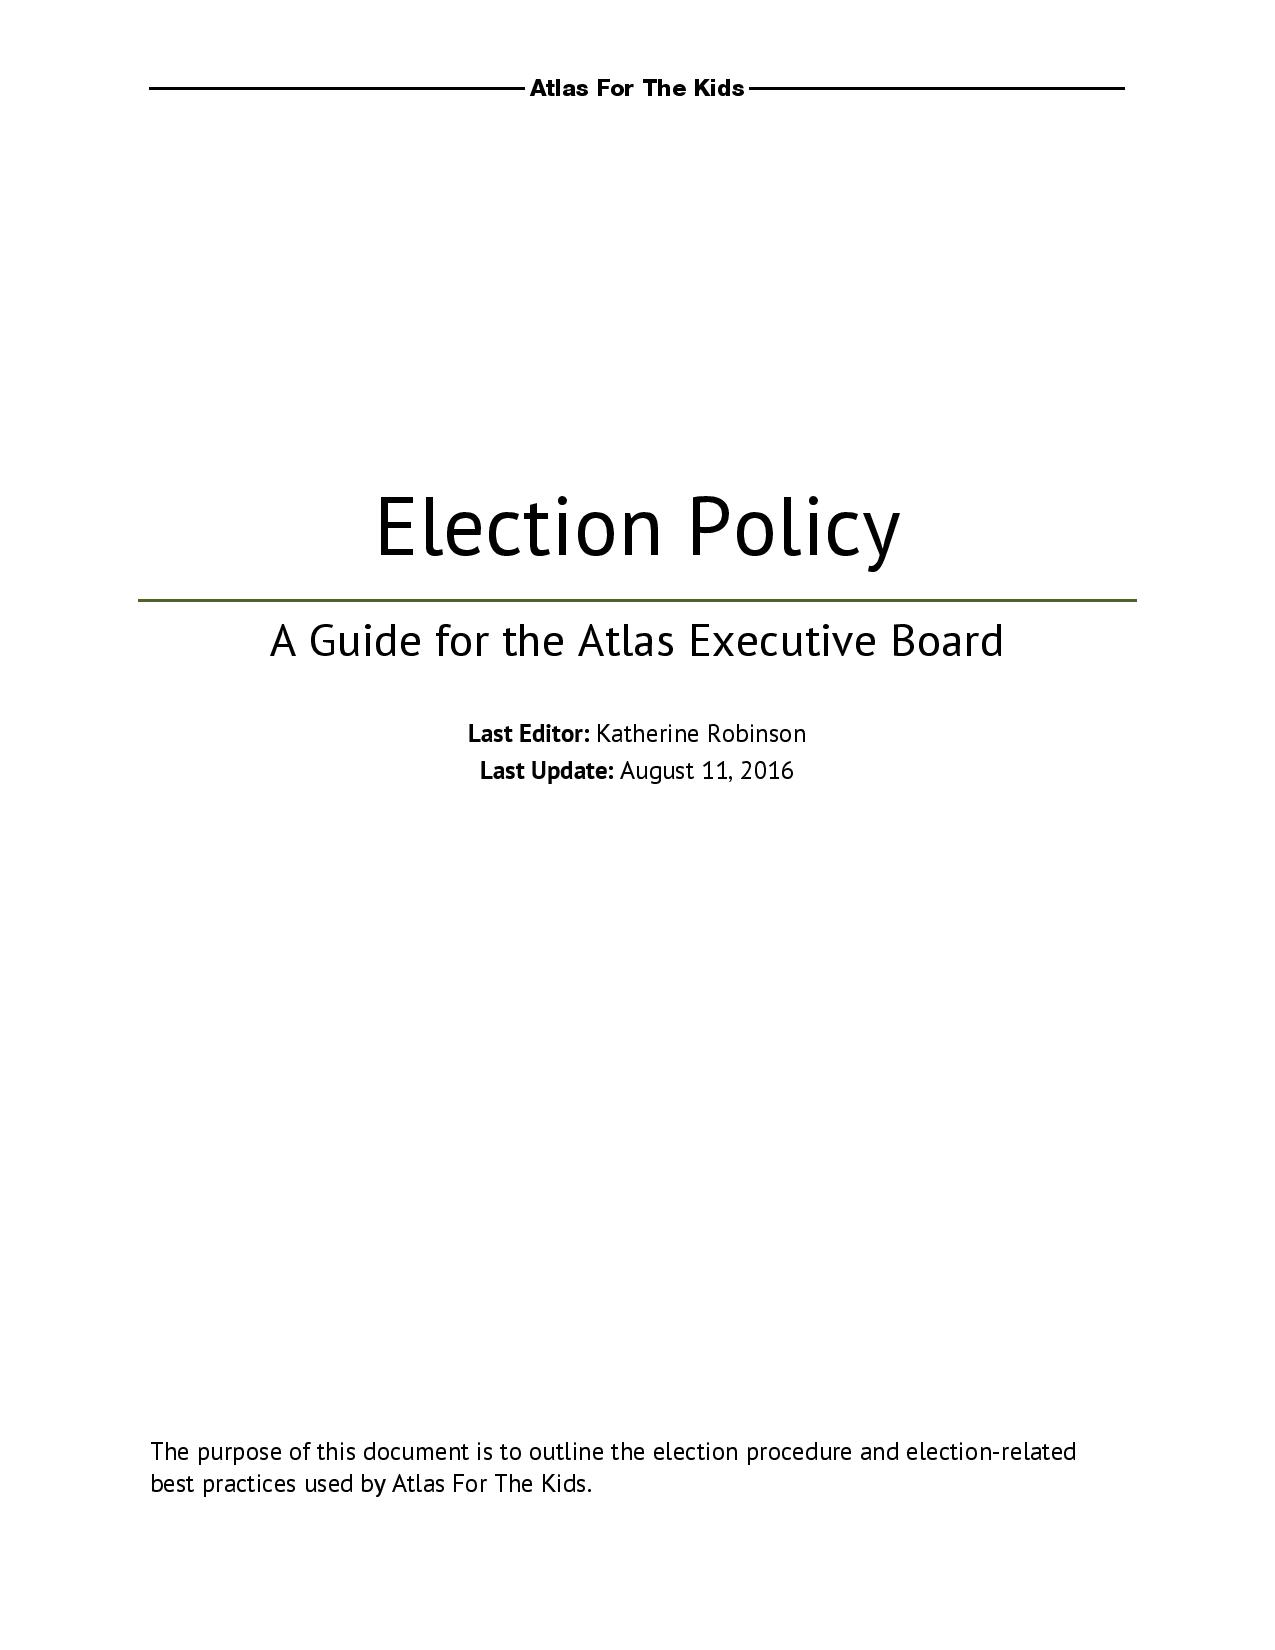 Election Policies-page-001.jpg